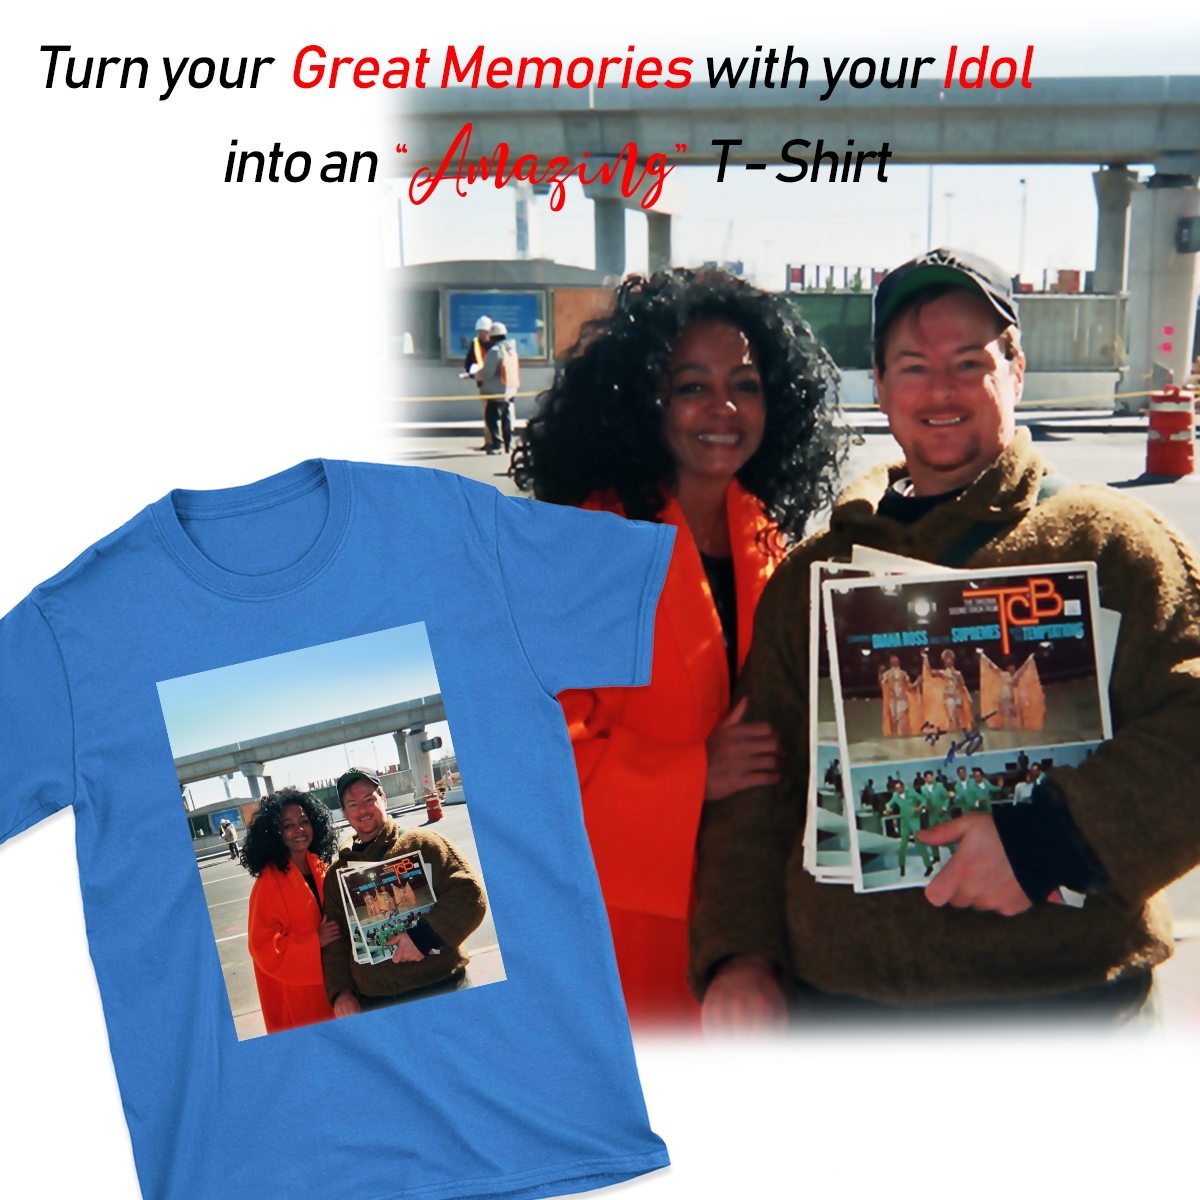 UPLOAD THE AWESOME PHOTOS WITH YOUR IDOL ON T SHIRT